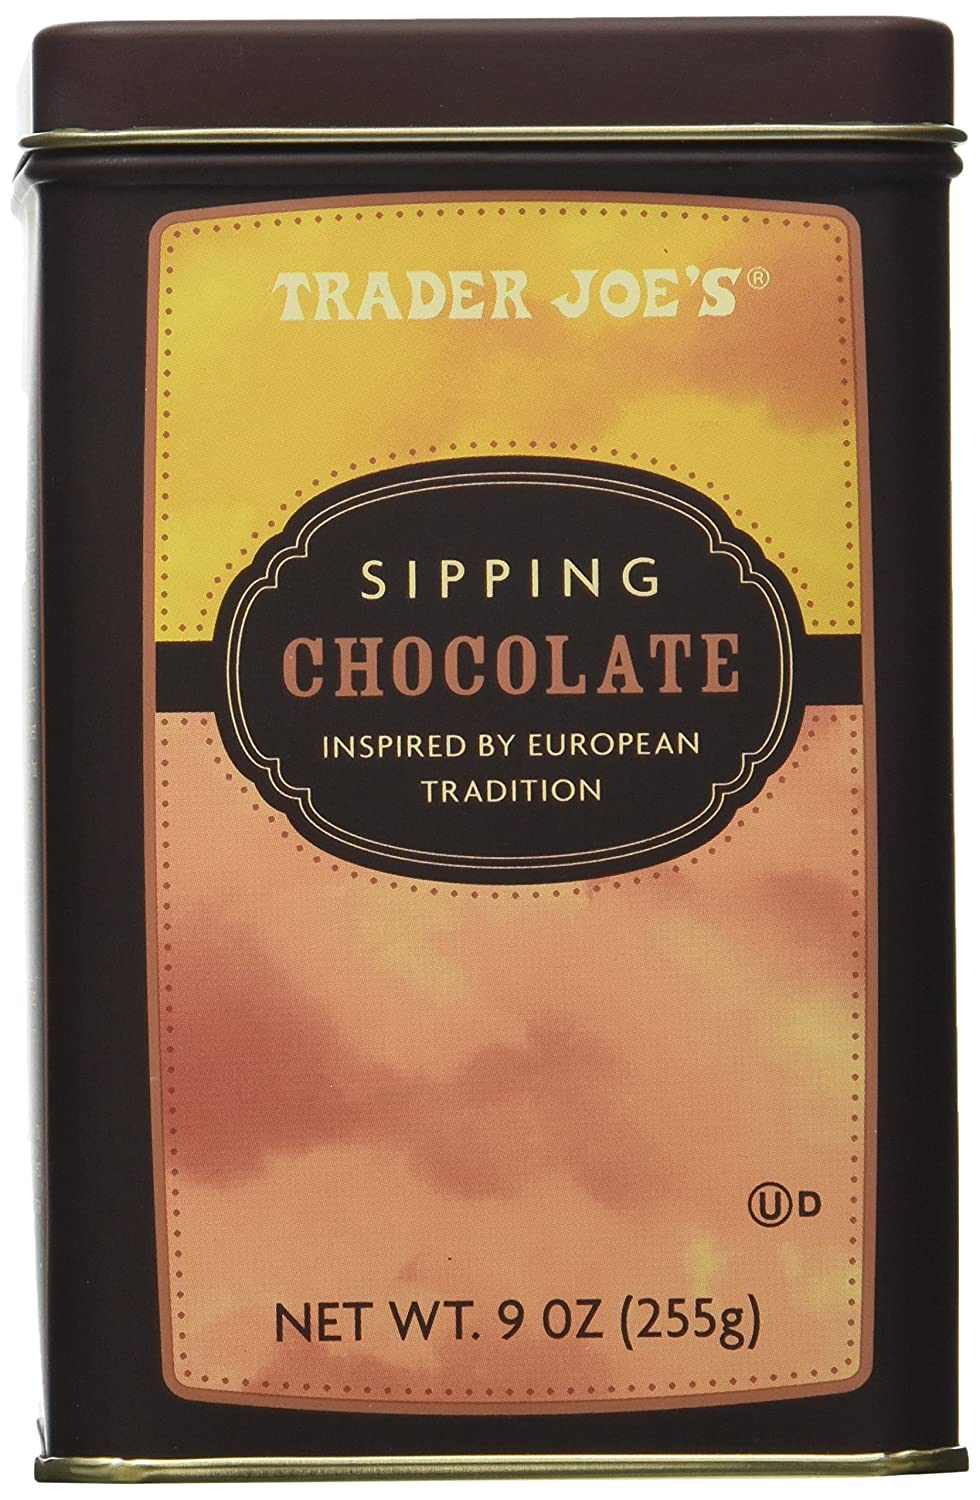 Trader Joe's Sipping Chocolate Inspired By European Tradition Decadent Chocolate Elixir Great for the Festive Season Net Wt. 9 oz.